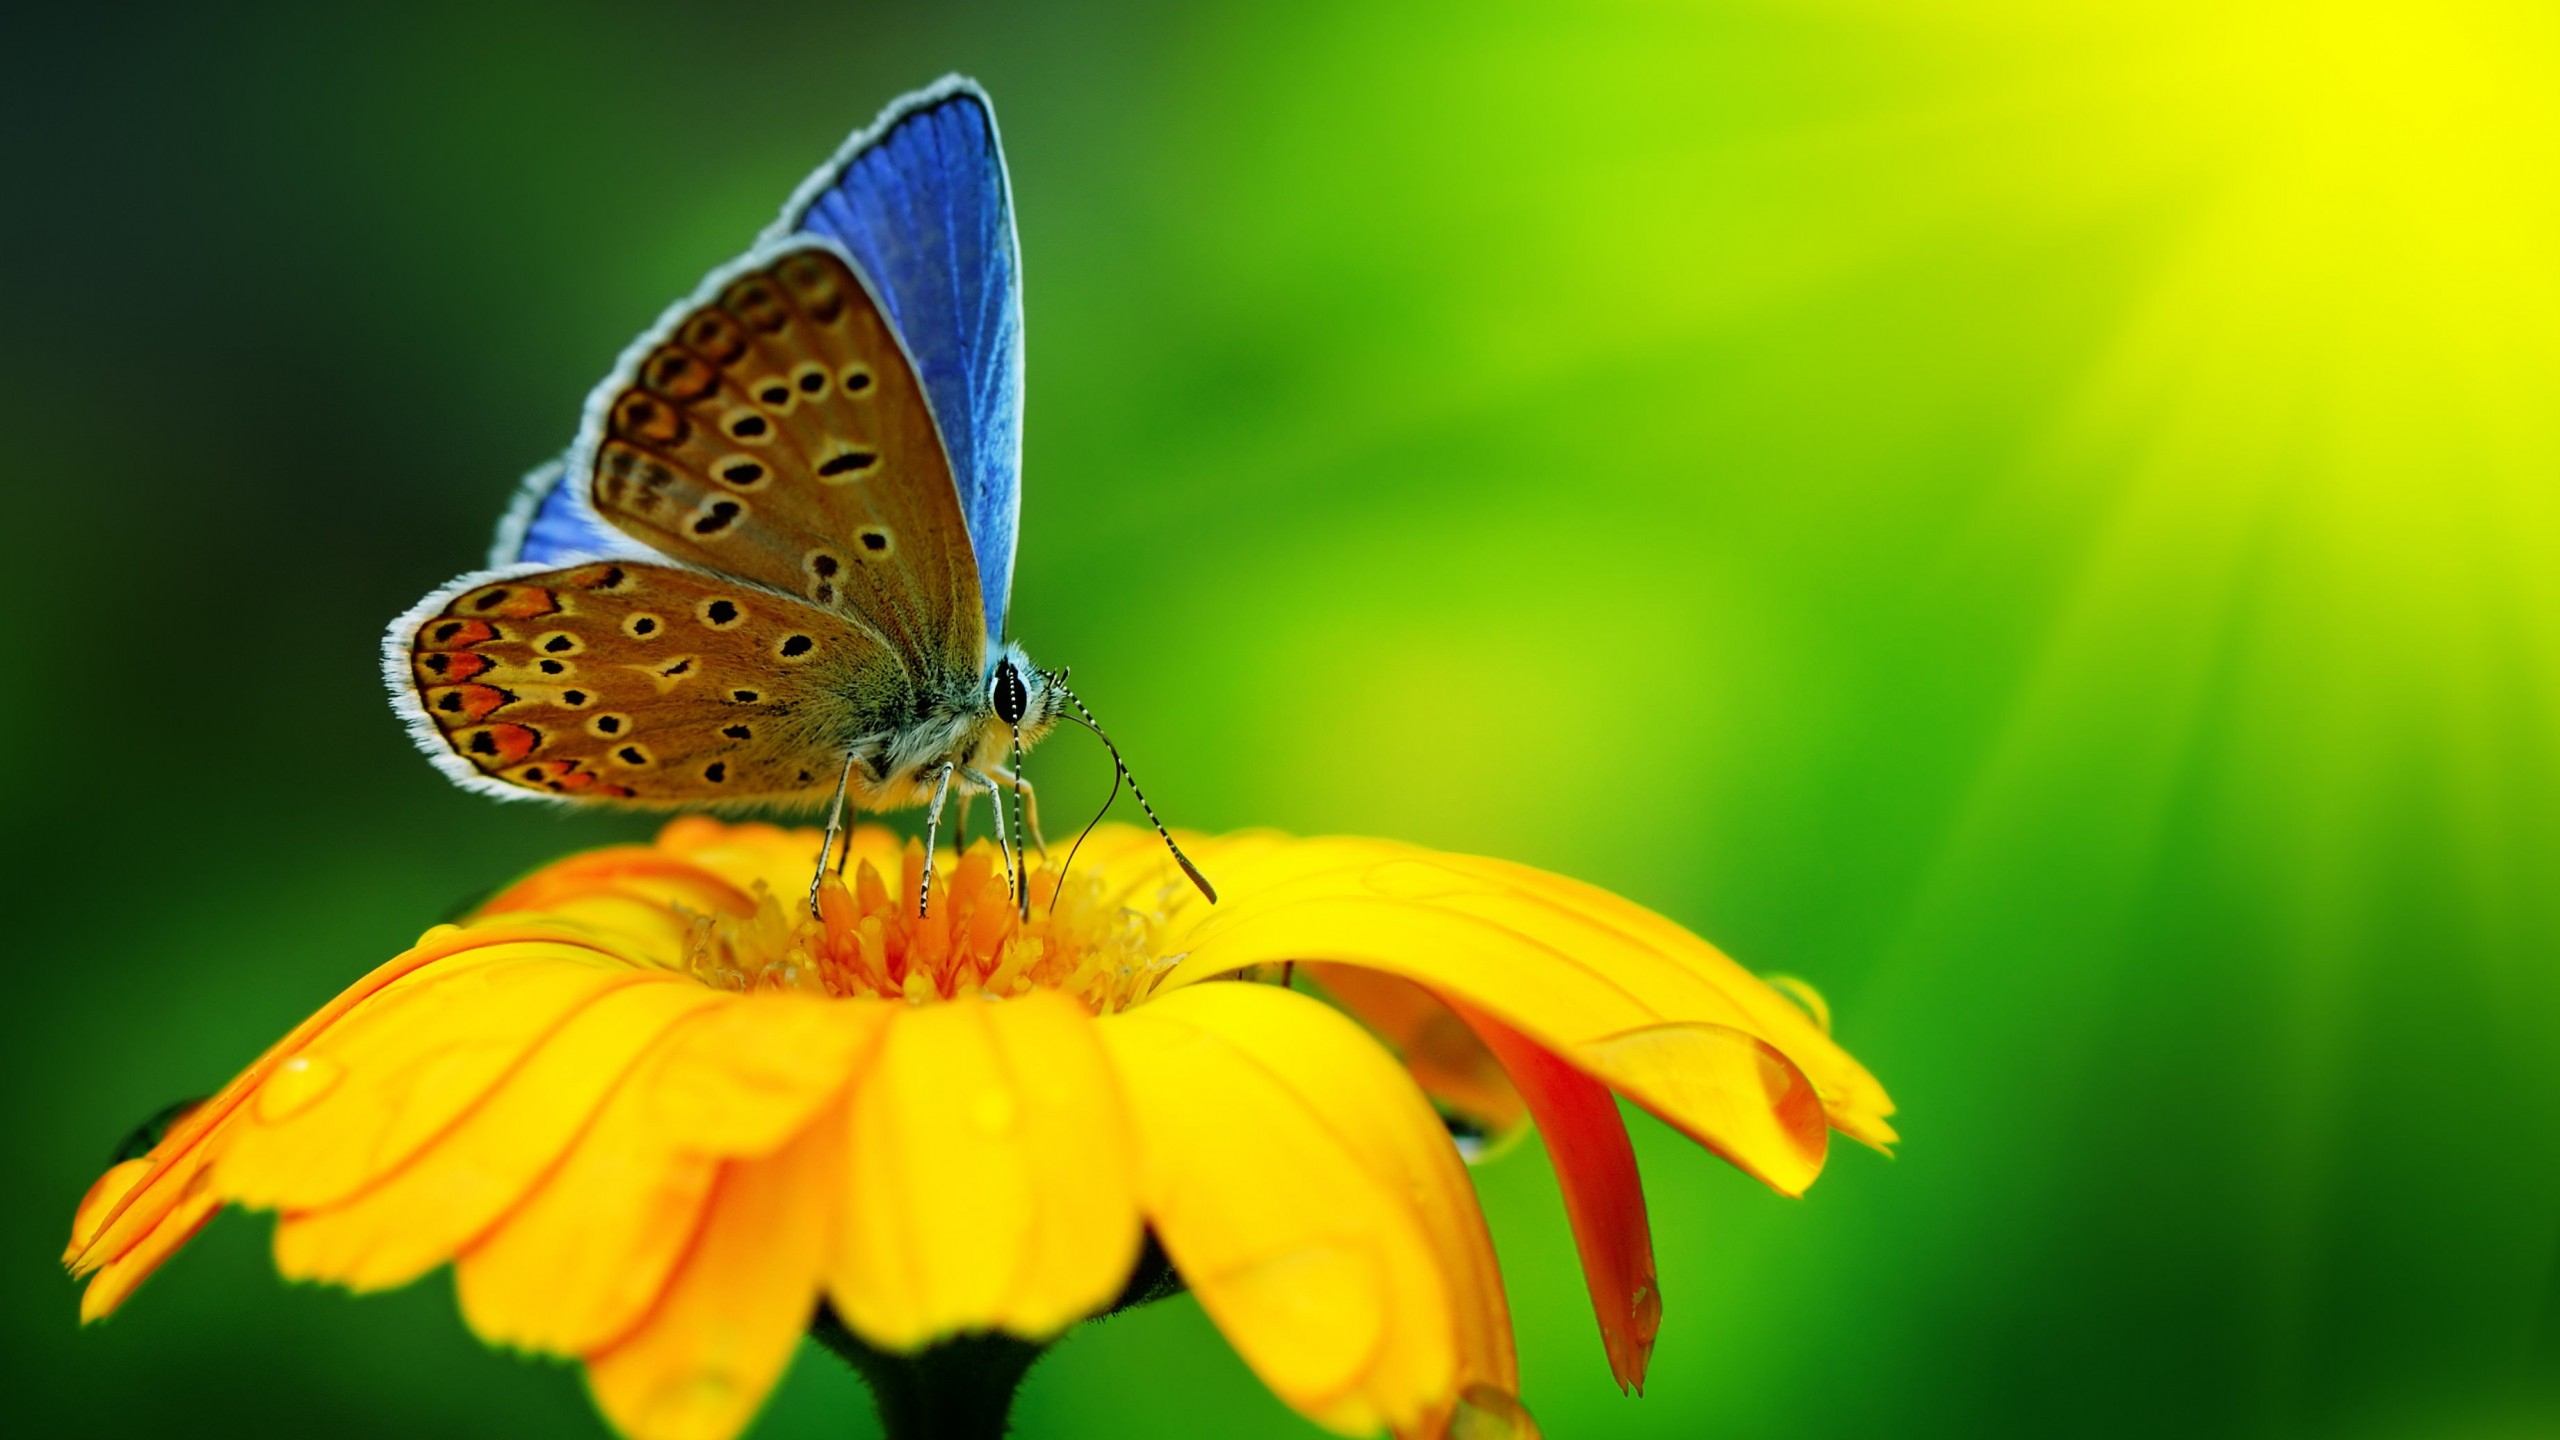 Butterfly Collecting Pollen Wallpaper for Social Media YouTube Channel Art